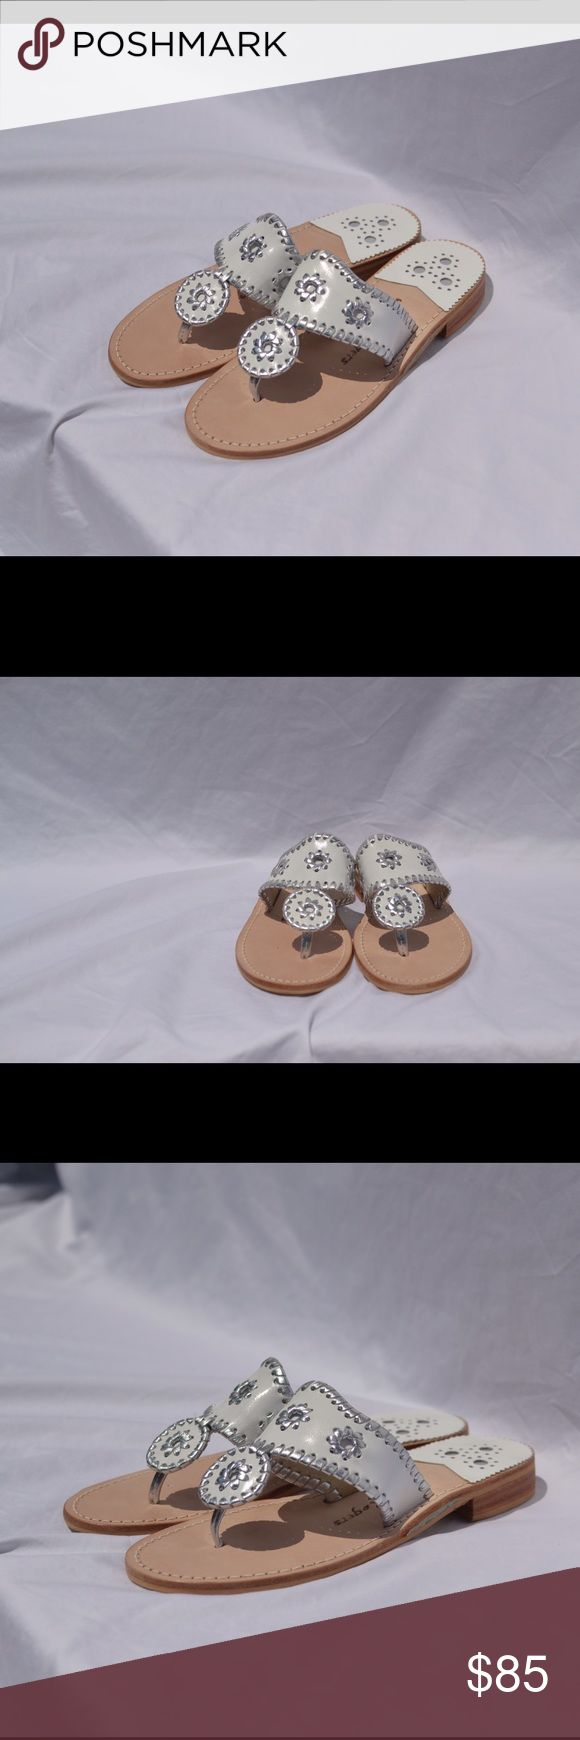 White with silver trim Jack Rodgers Size 7 This are brand new, never been worn, size 7 Jack Rodgers. White with silver trim Jack Rogers Shoes Sandals